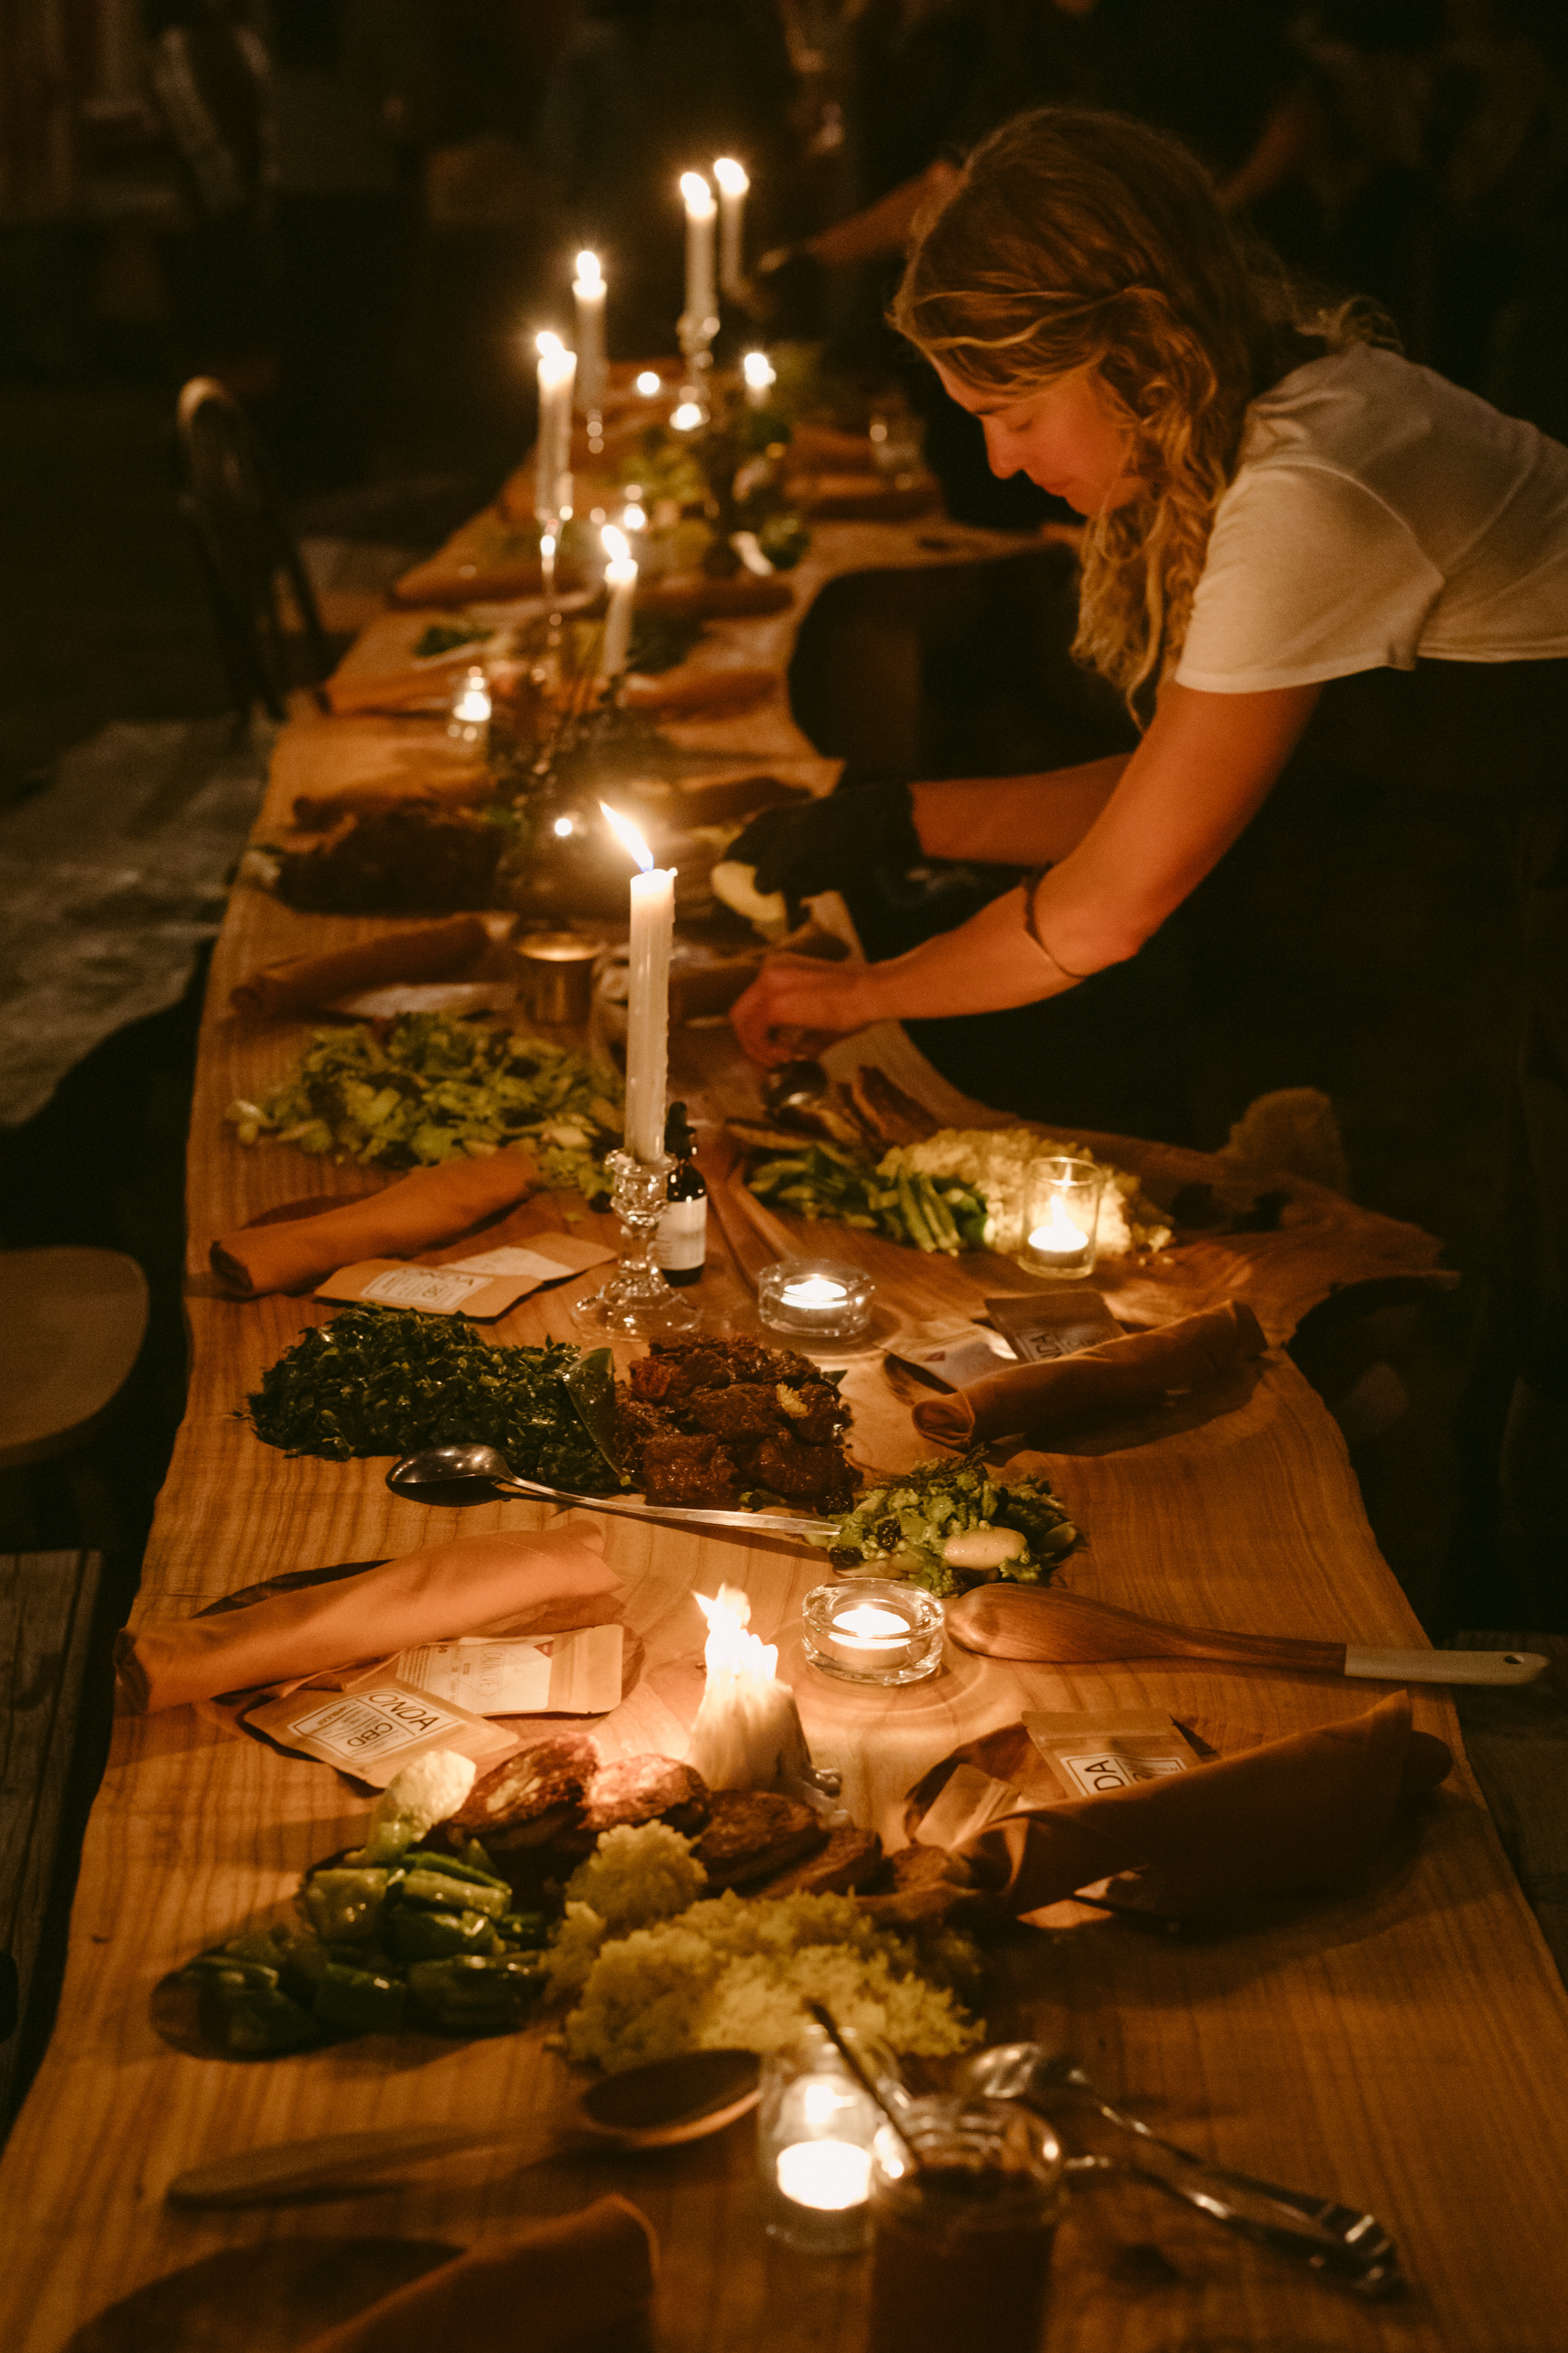 In farming we are political. In cooking we're artistic. - If there is a place I could live forever, it is most certainly the dinner table. So I built one to share with others.